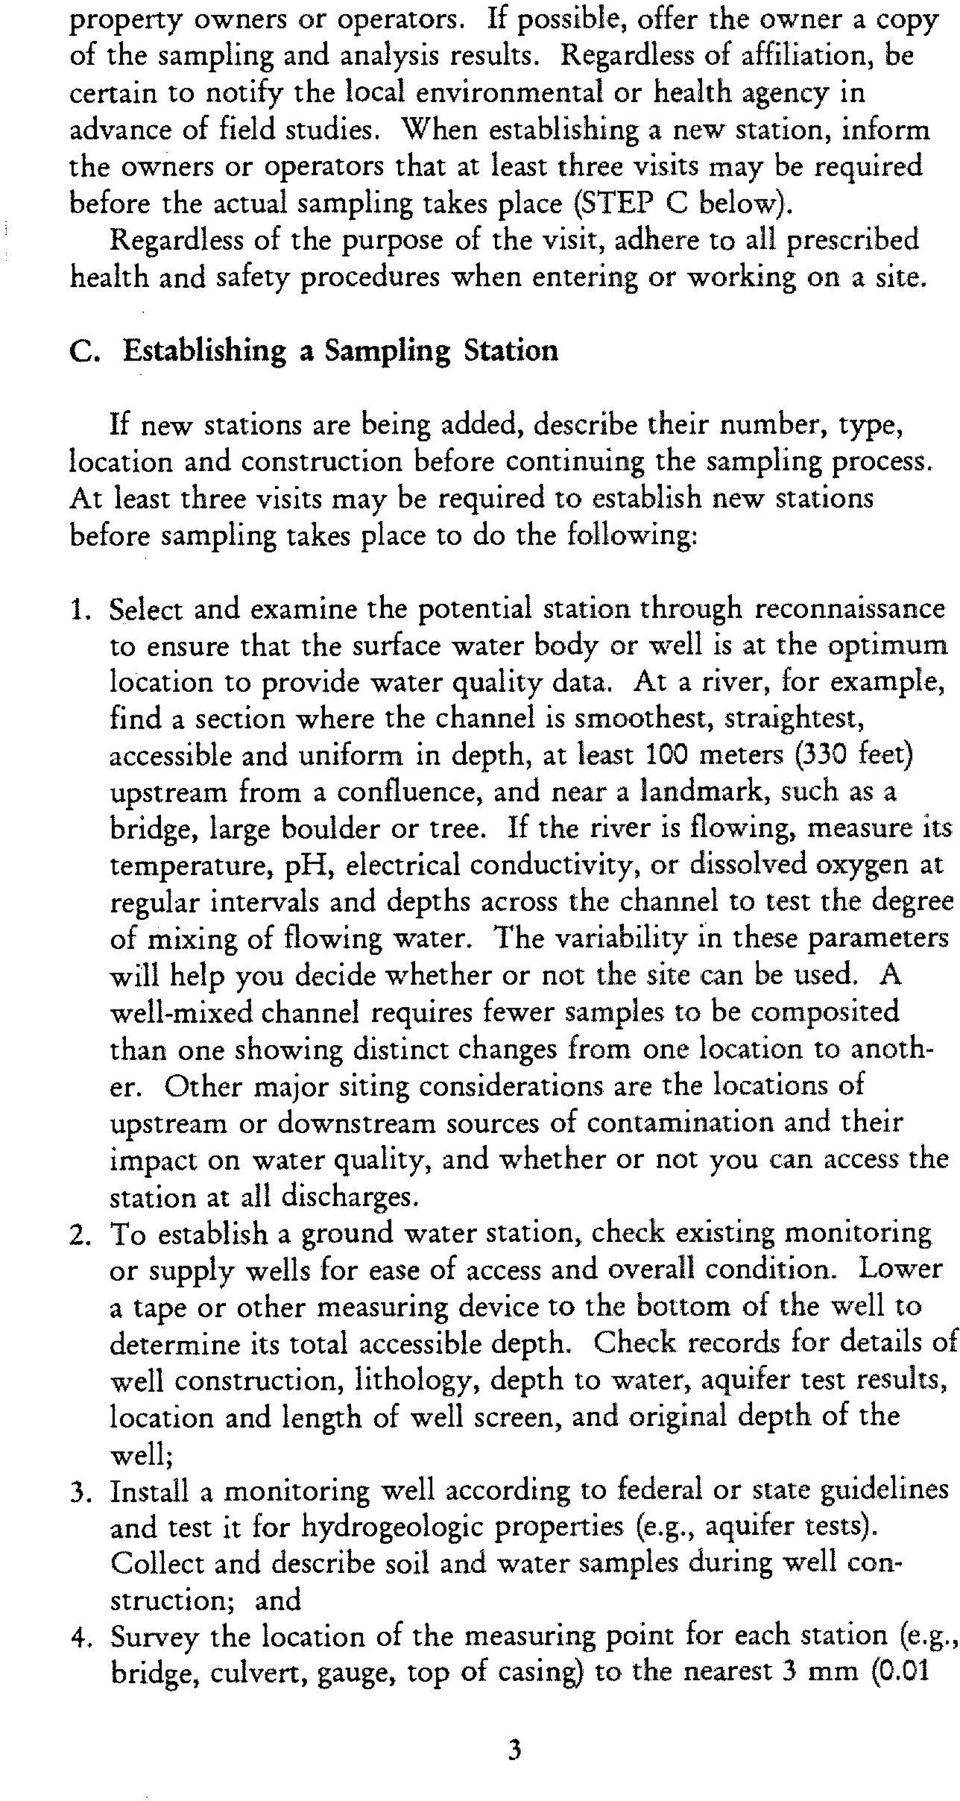 When establishing a new station, inform the owners or operators that at least three visits may be required before the actual sampling takes place (STEP C below).